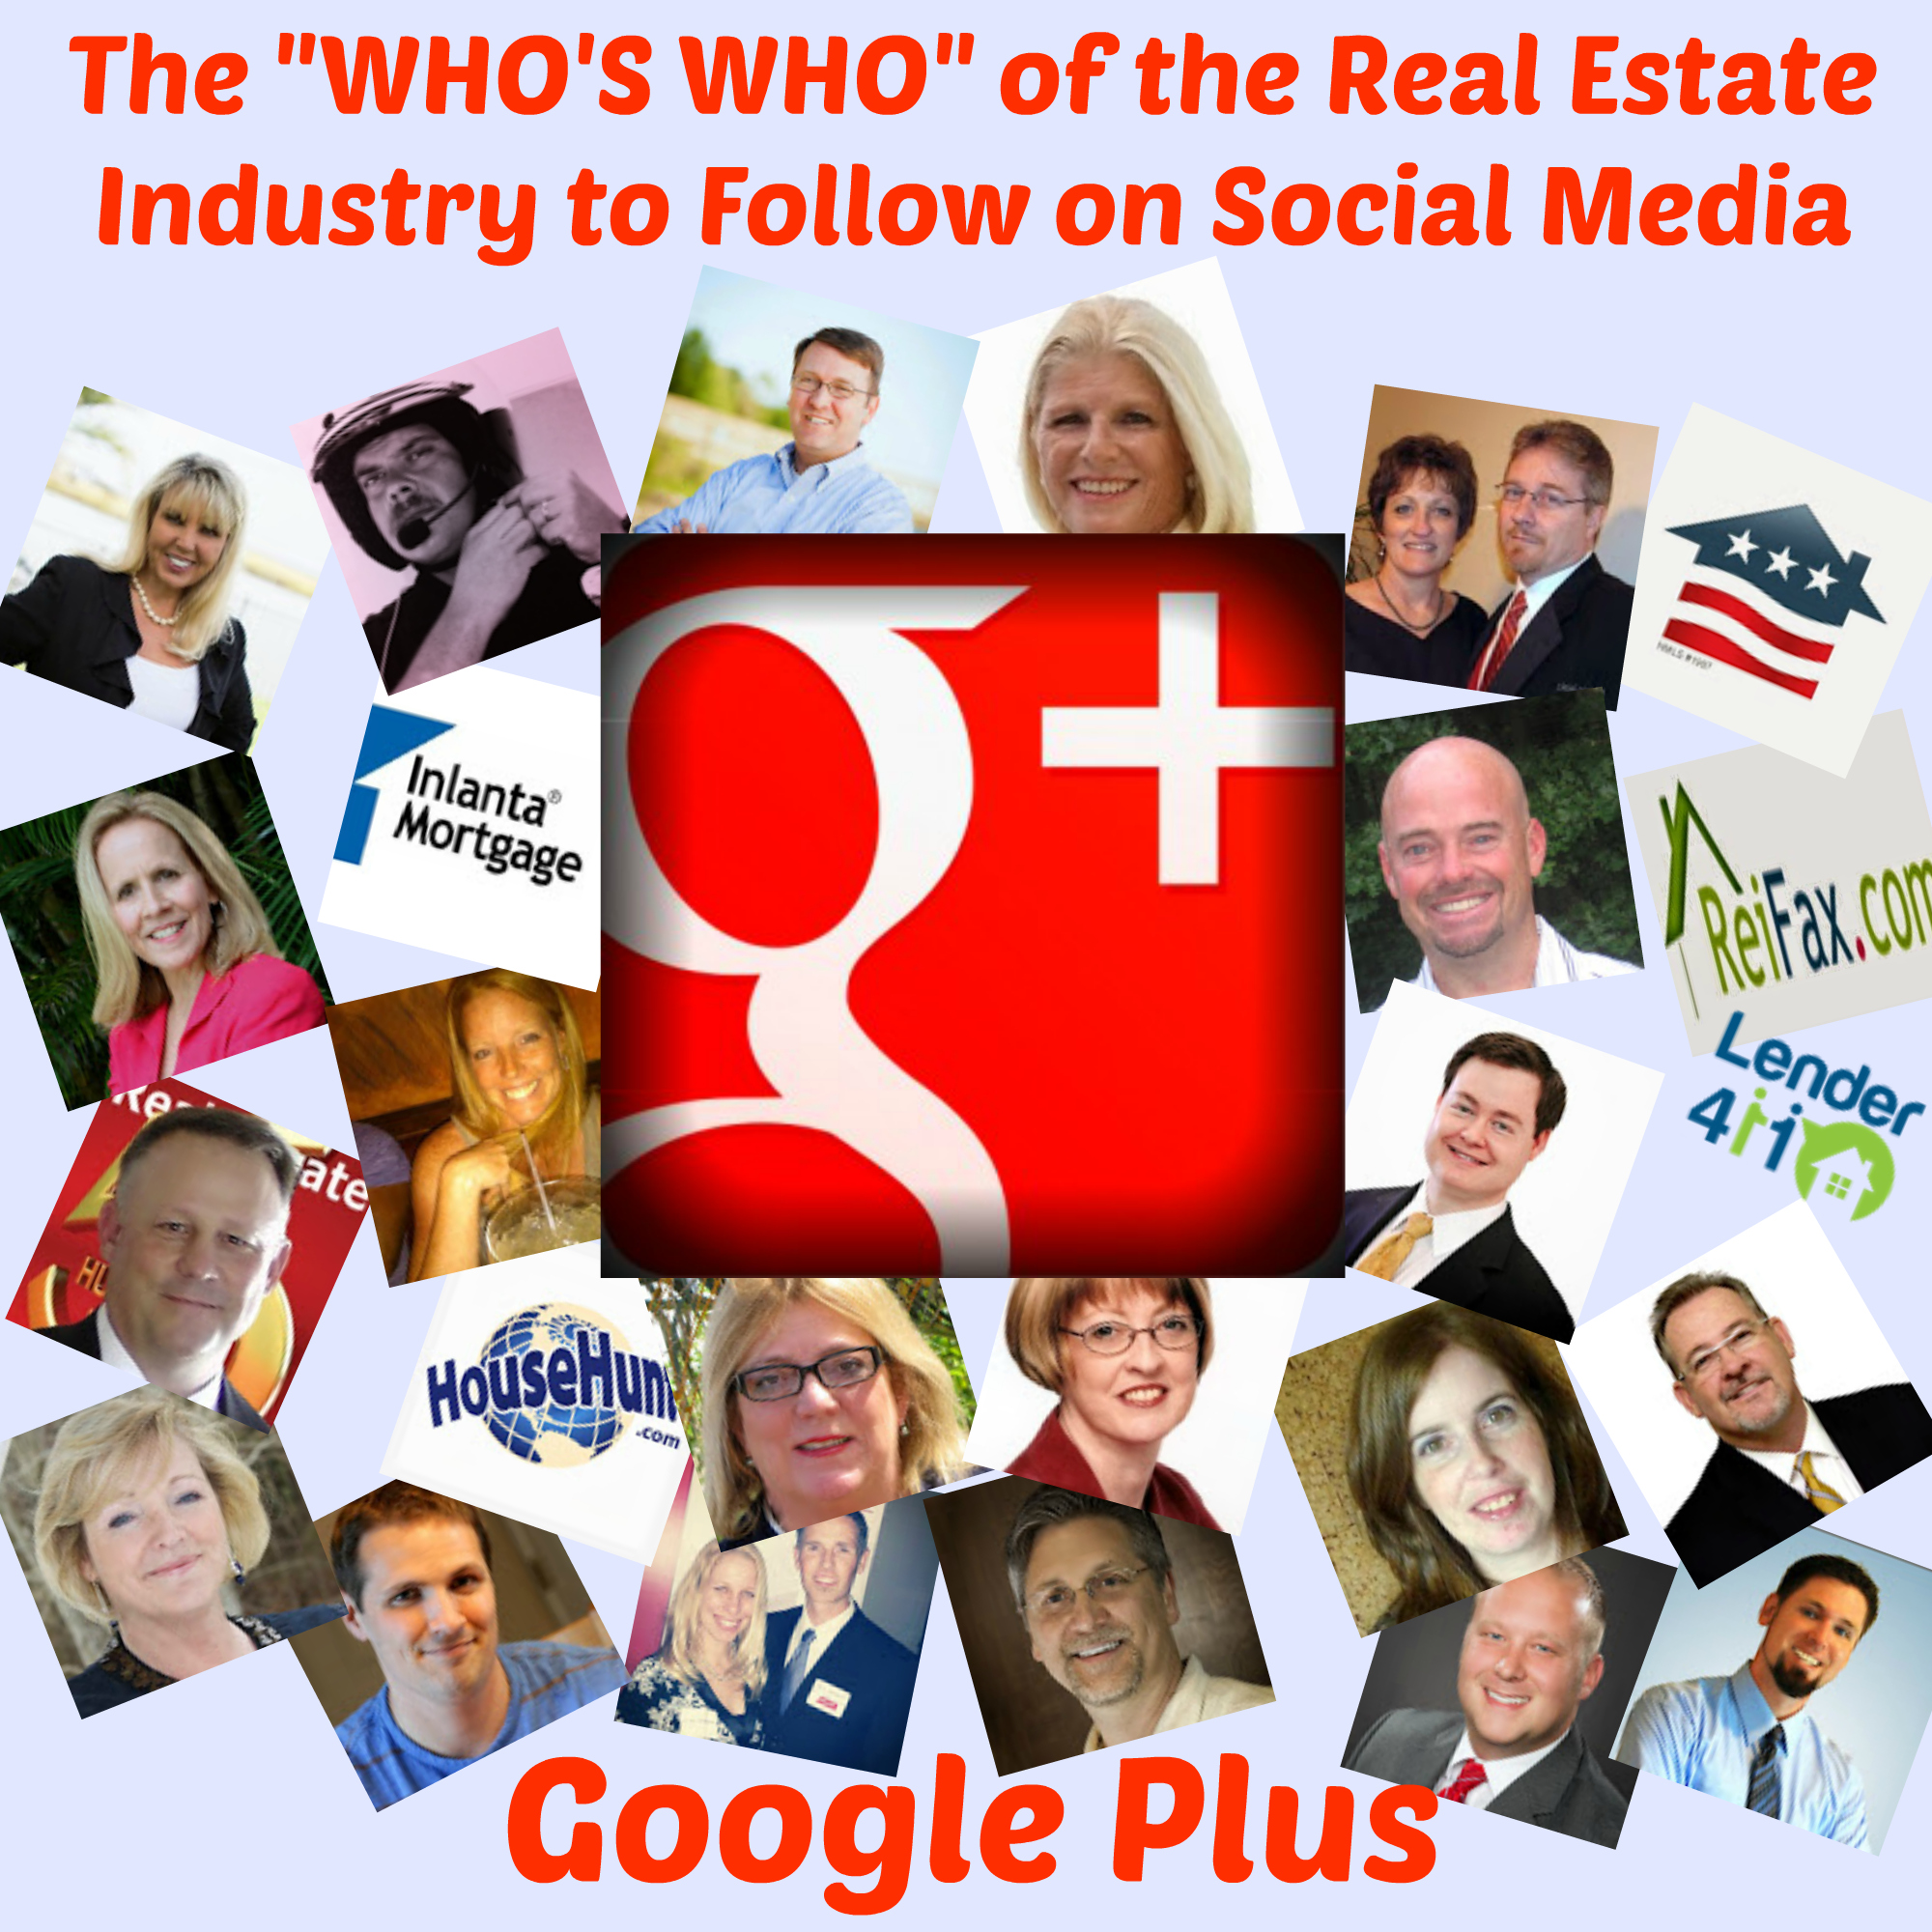 """The """"Who's Who"""" of the Real Estate Industry to Follow on Social Media - Google Plus"""